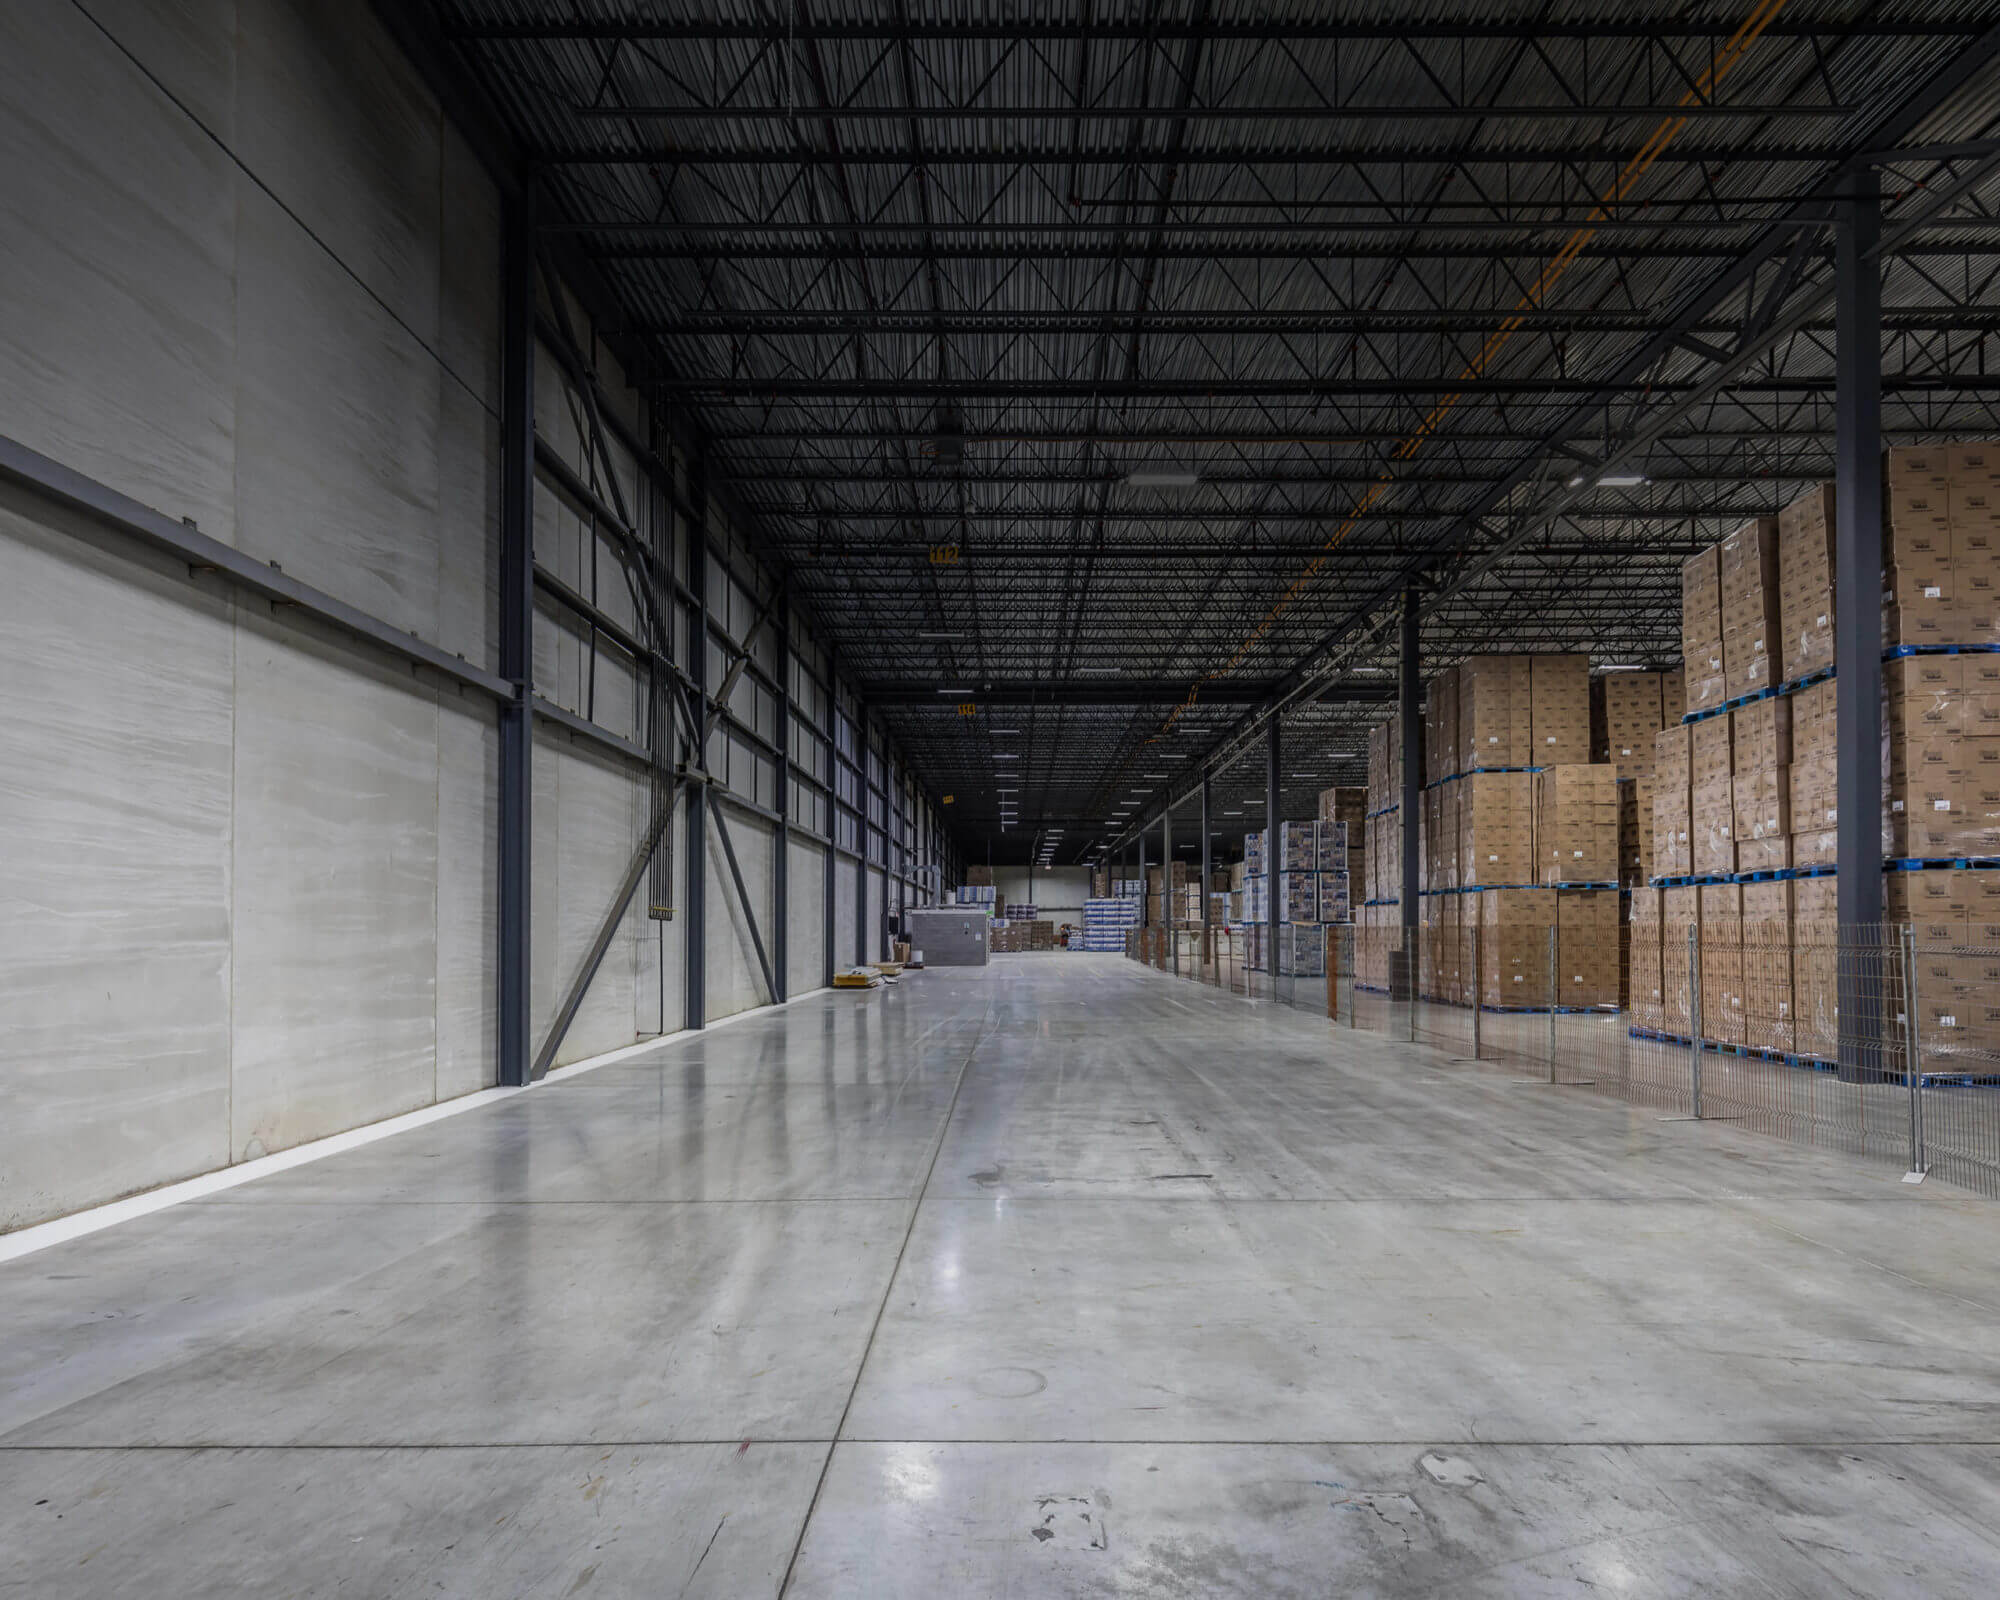 image of dream industrial empty warehouse building